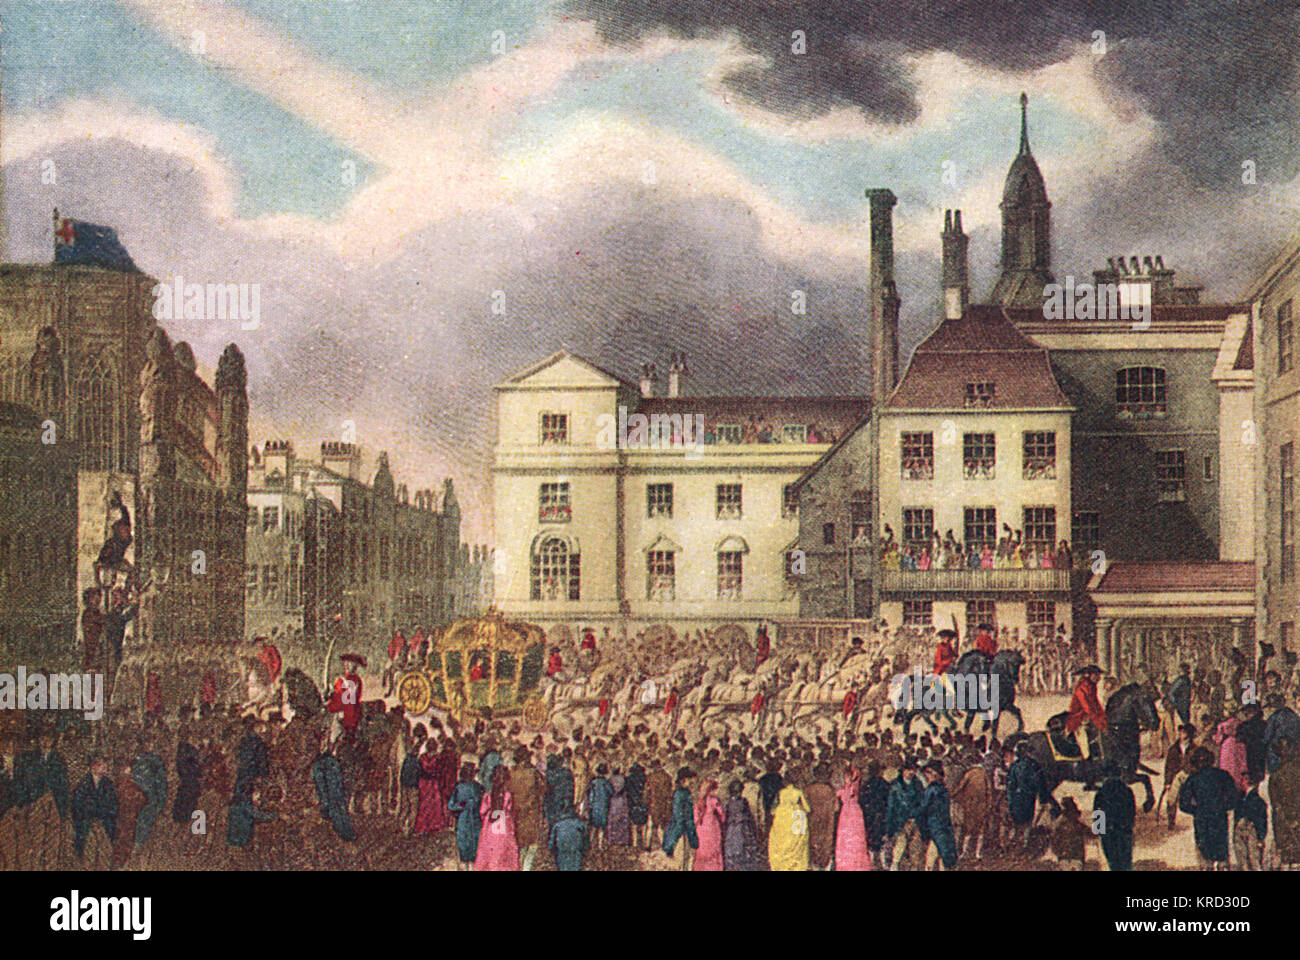 The Houses of Parliament, pictured in 1804 with crowds assembled to watch the Royal Procession.       Date: 1804 - Stock Image